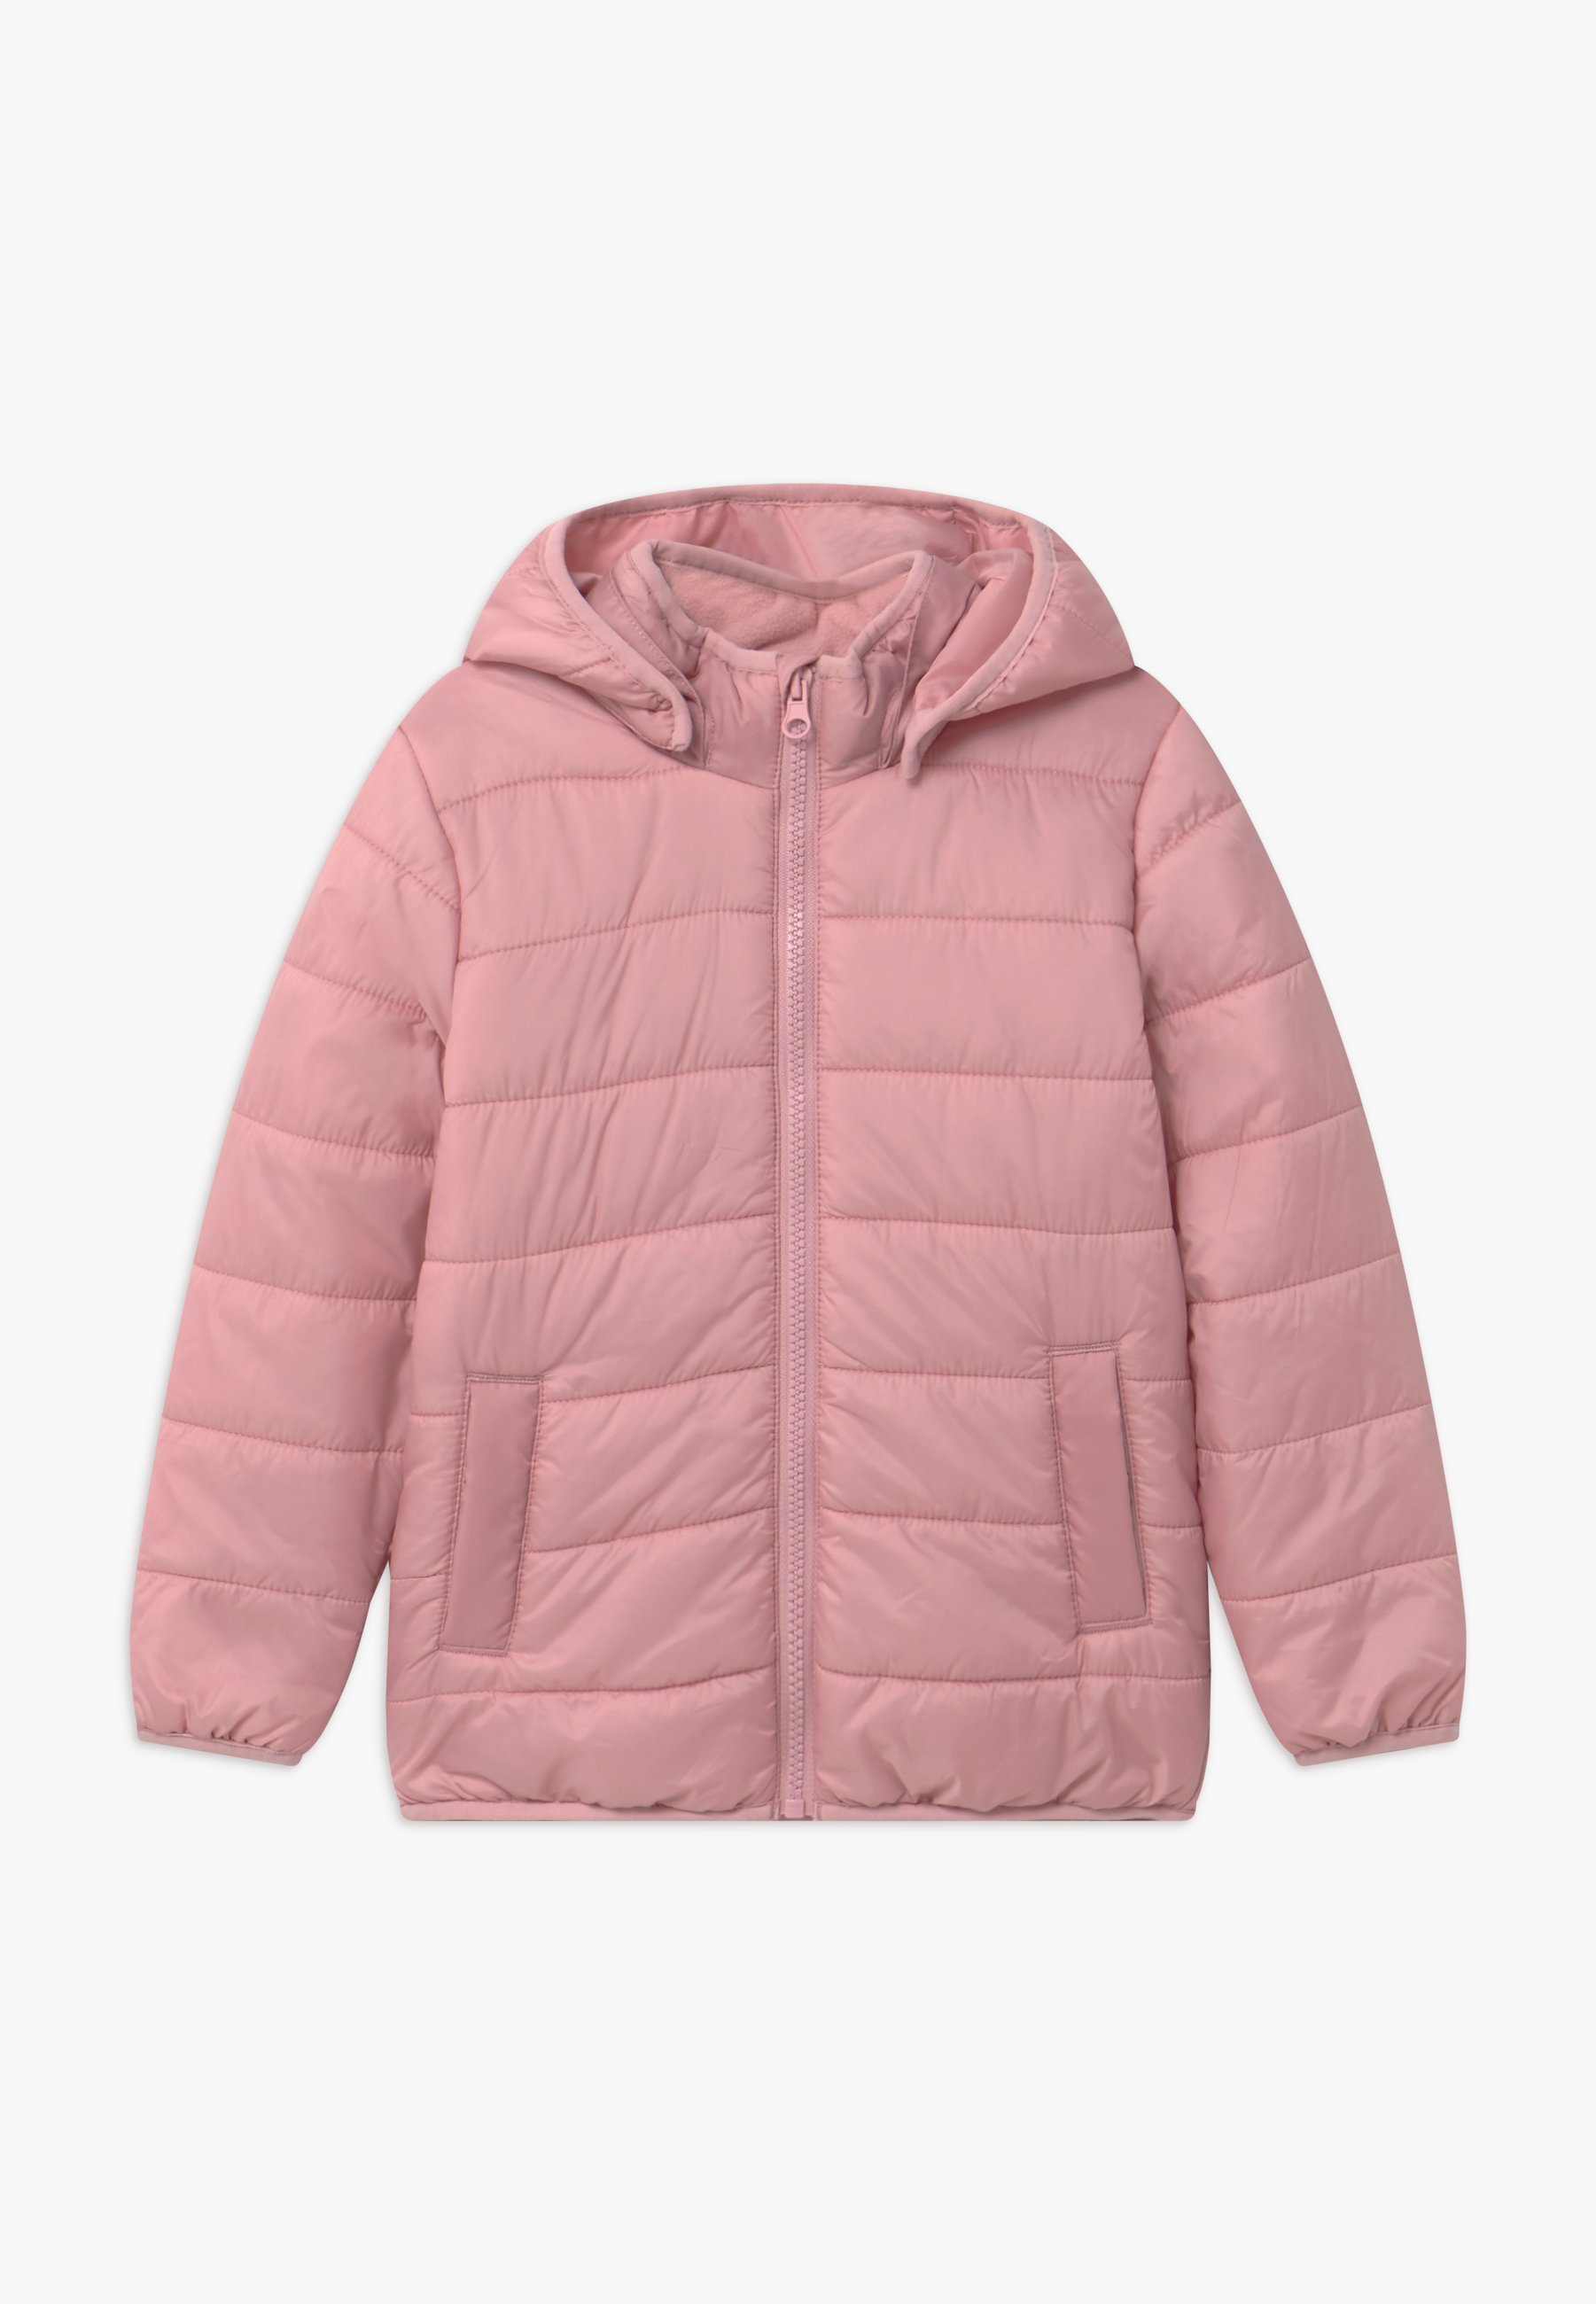 Jacket Ester Light Padded (Dusty Pink) (399 kr) Lindex